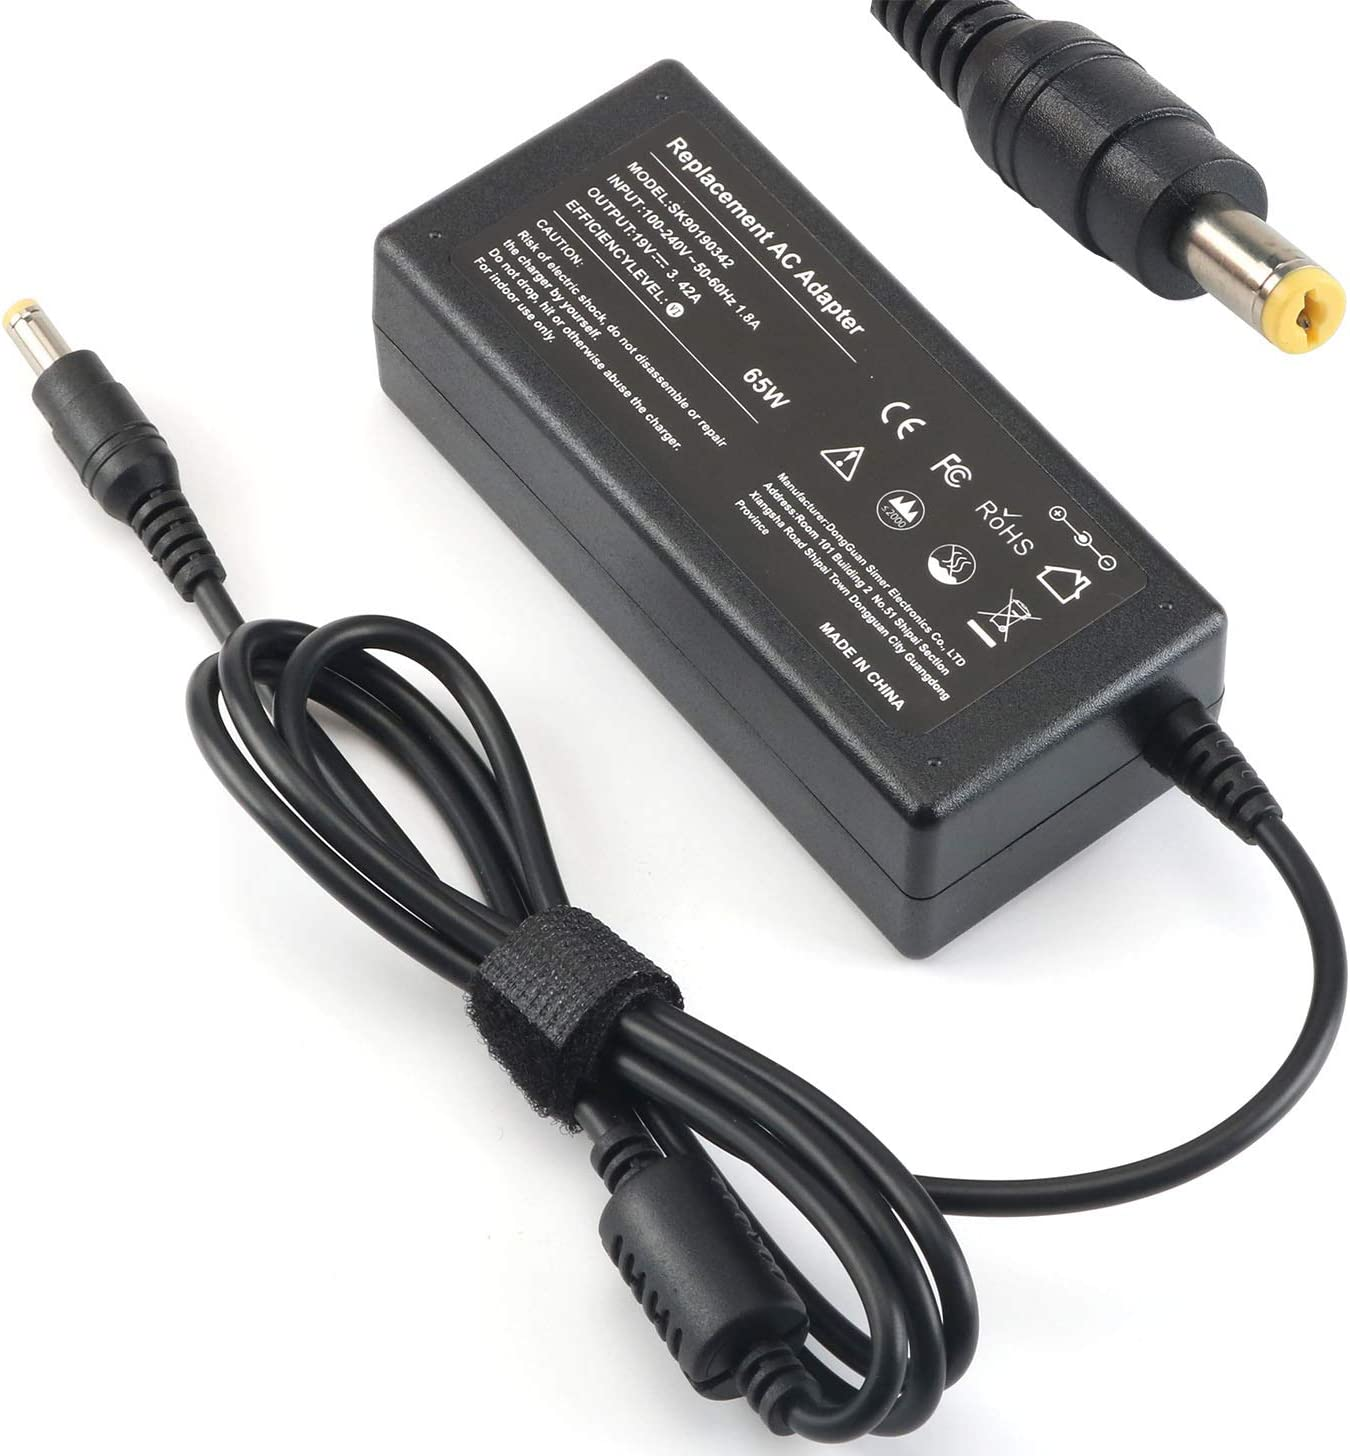 19V AC Adapter Laptop Charger for Acer LCD Monitor S202HL SA230 S230HL S231HL S232HL H236HL G246HL H276HL G276HL G236HL S240HL S220HQL S271HL H226HQL G226HQL S202HL S241HL HN274H R240HY UM.VG6AA.B01